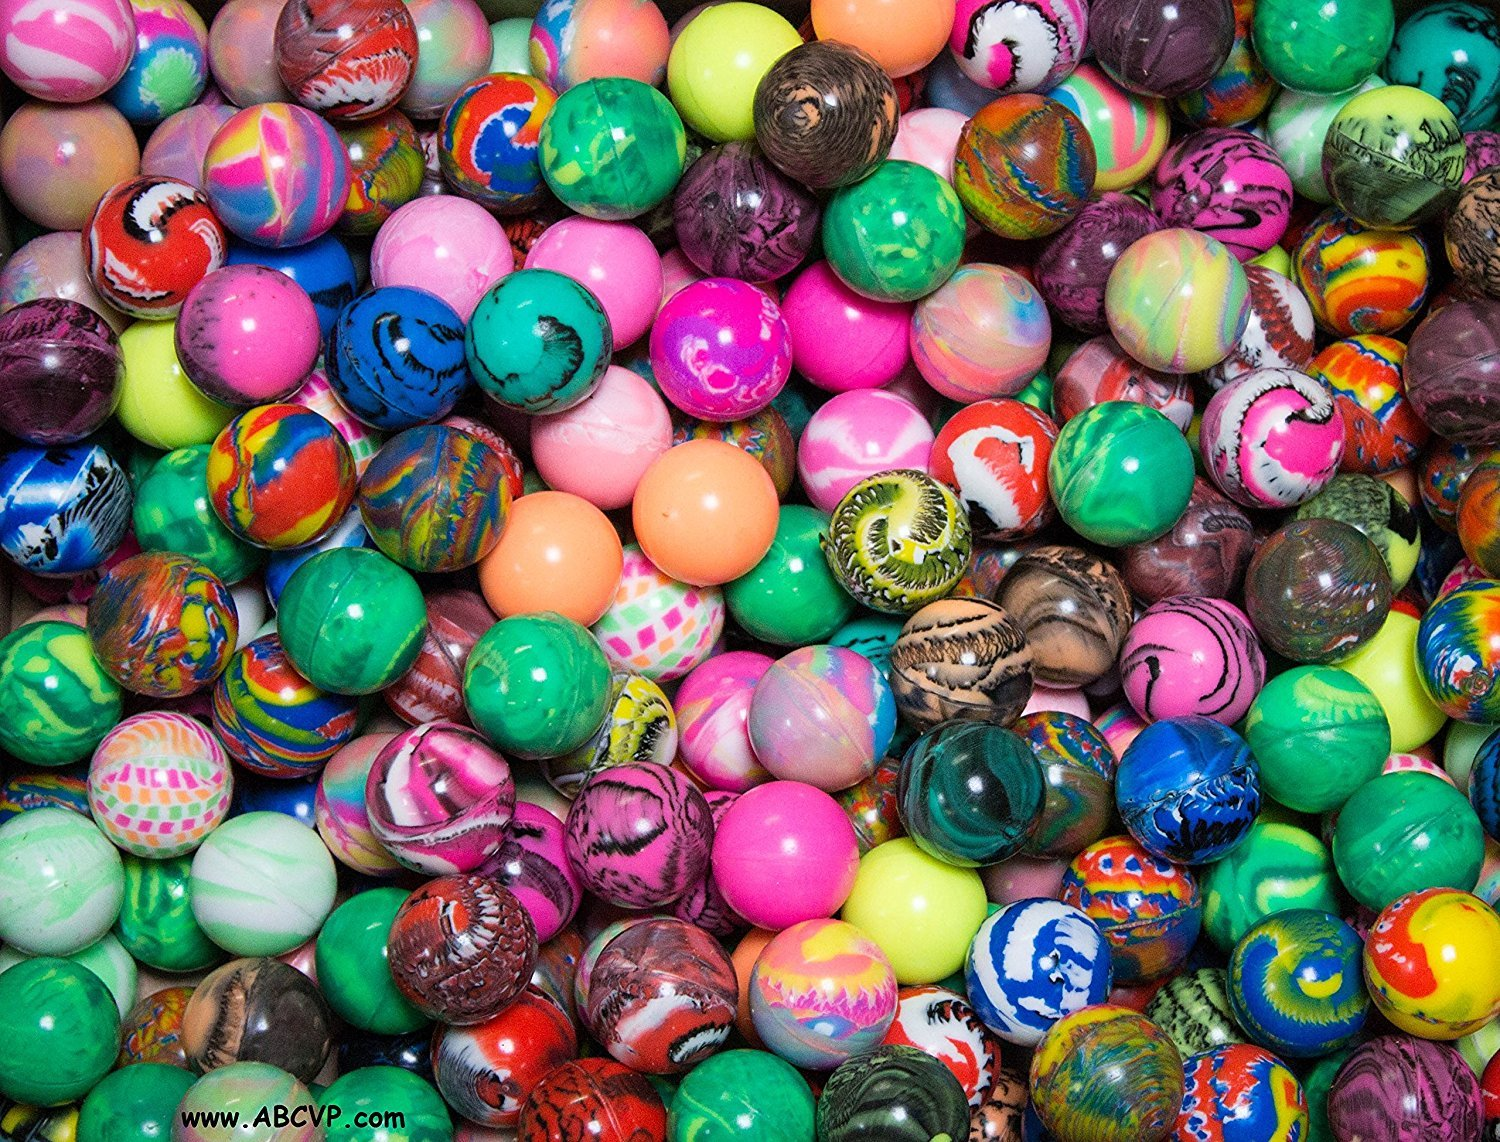 PREMIUM Bouncy Balls 27 MM (1000 count) by BOUNCY BALLS VENDING SUPPLY (Image #5)